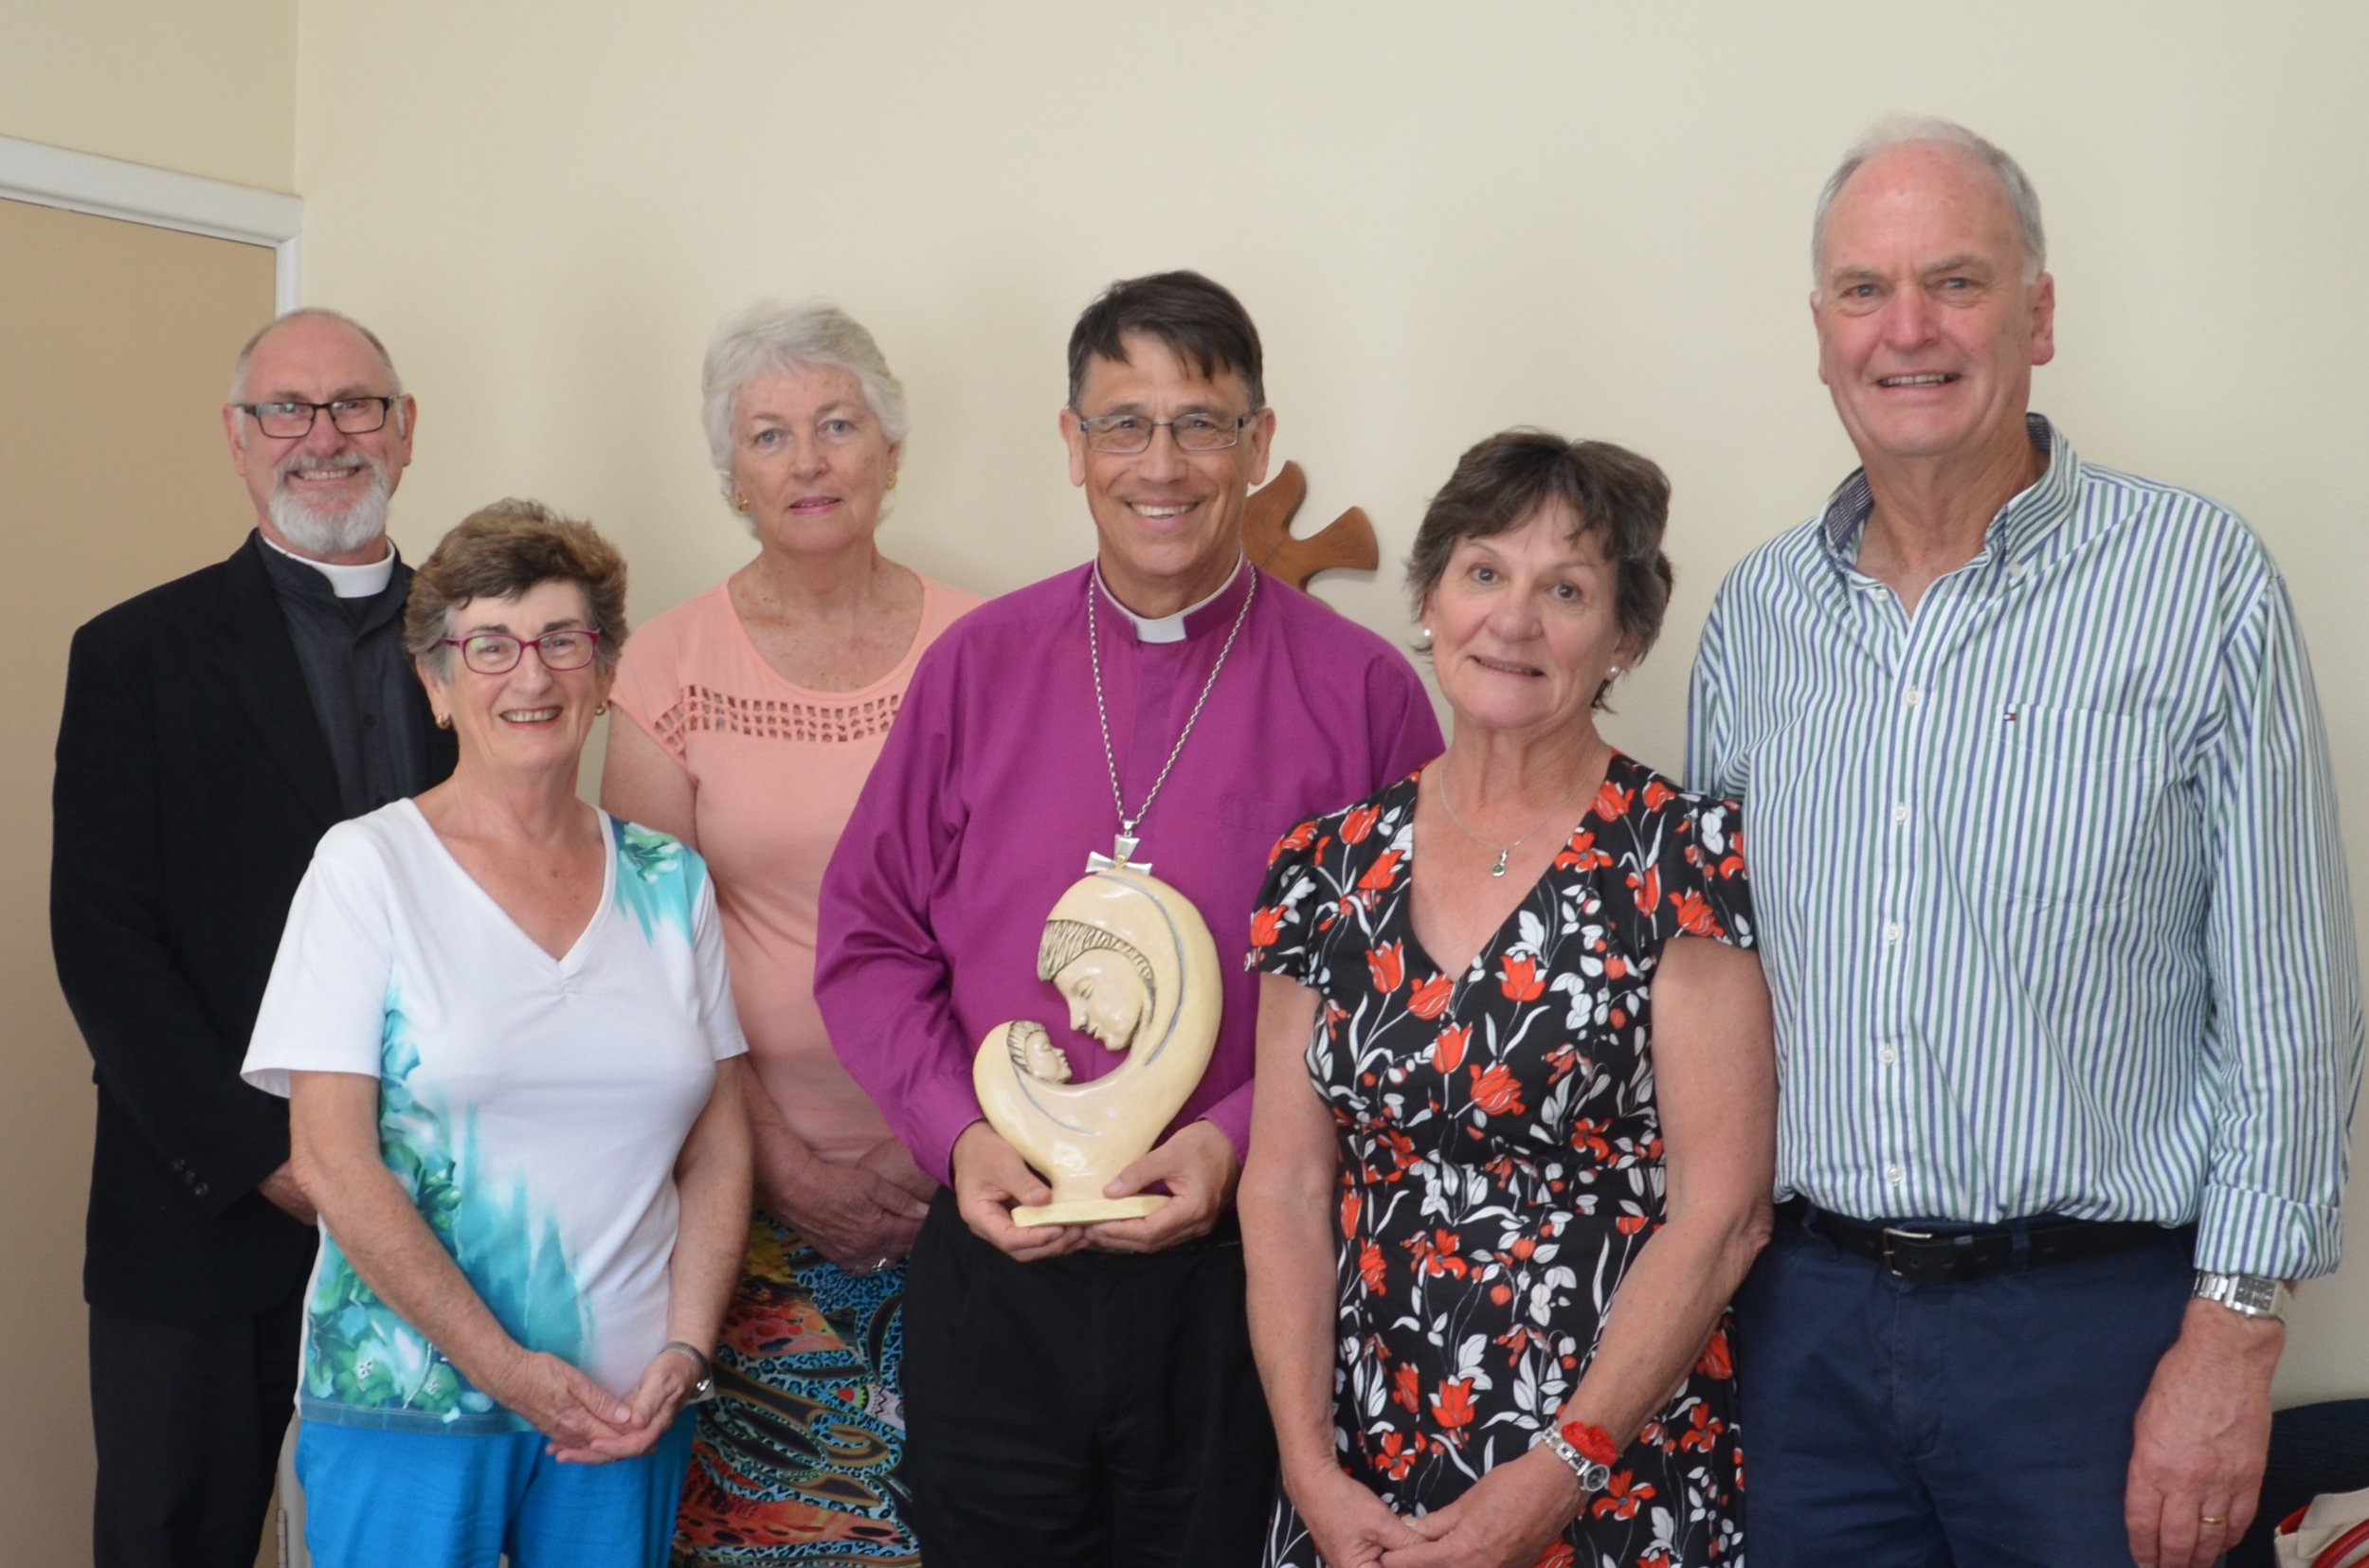 Presentation of Farewell gift to Bishop Allan from the Parishioners of St Mary's Church Busselton 091117.JPG